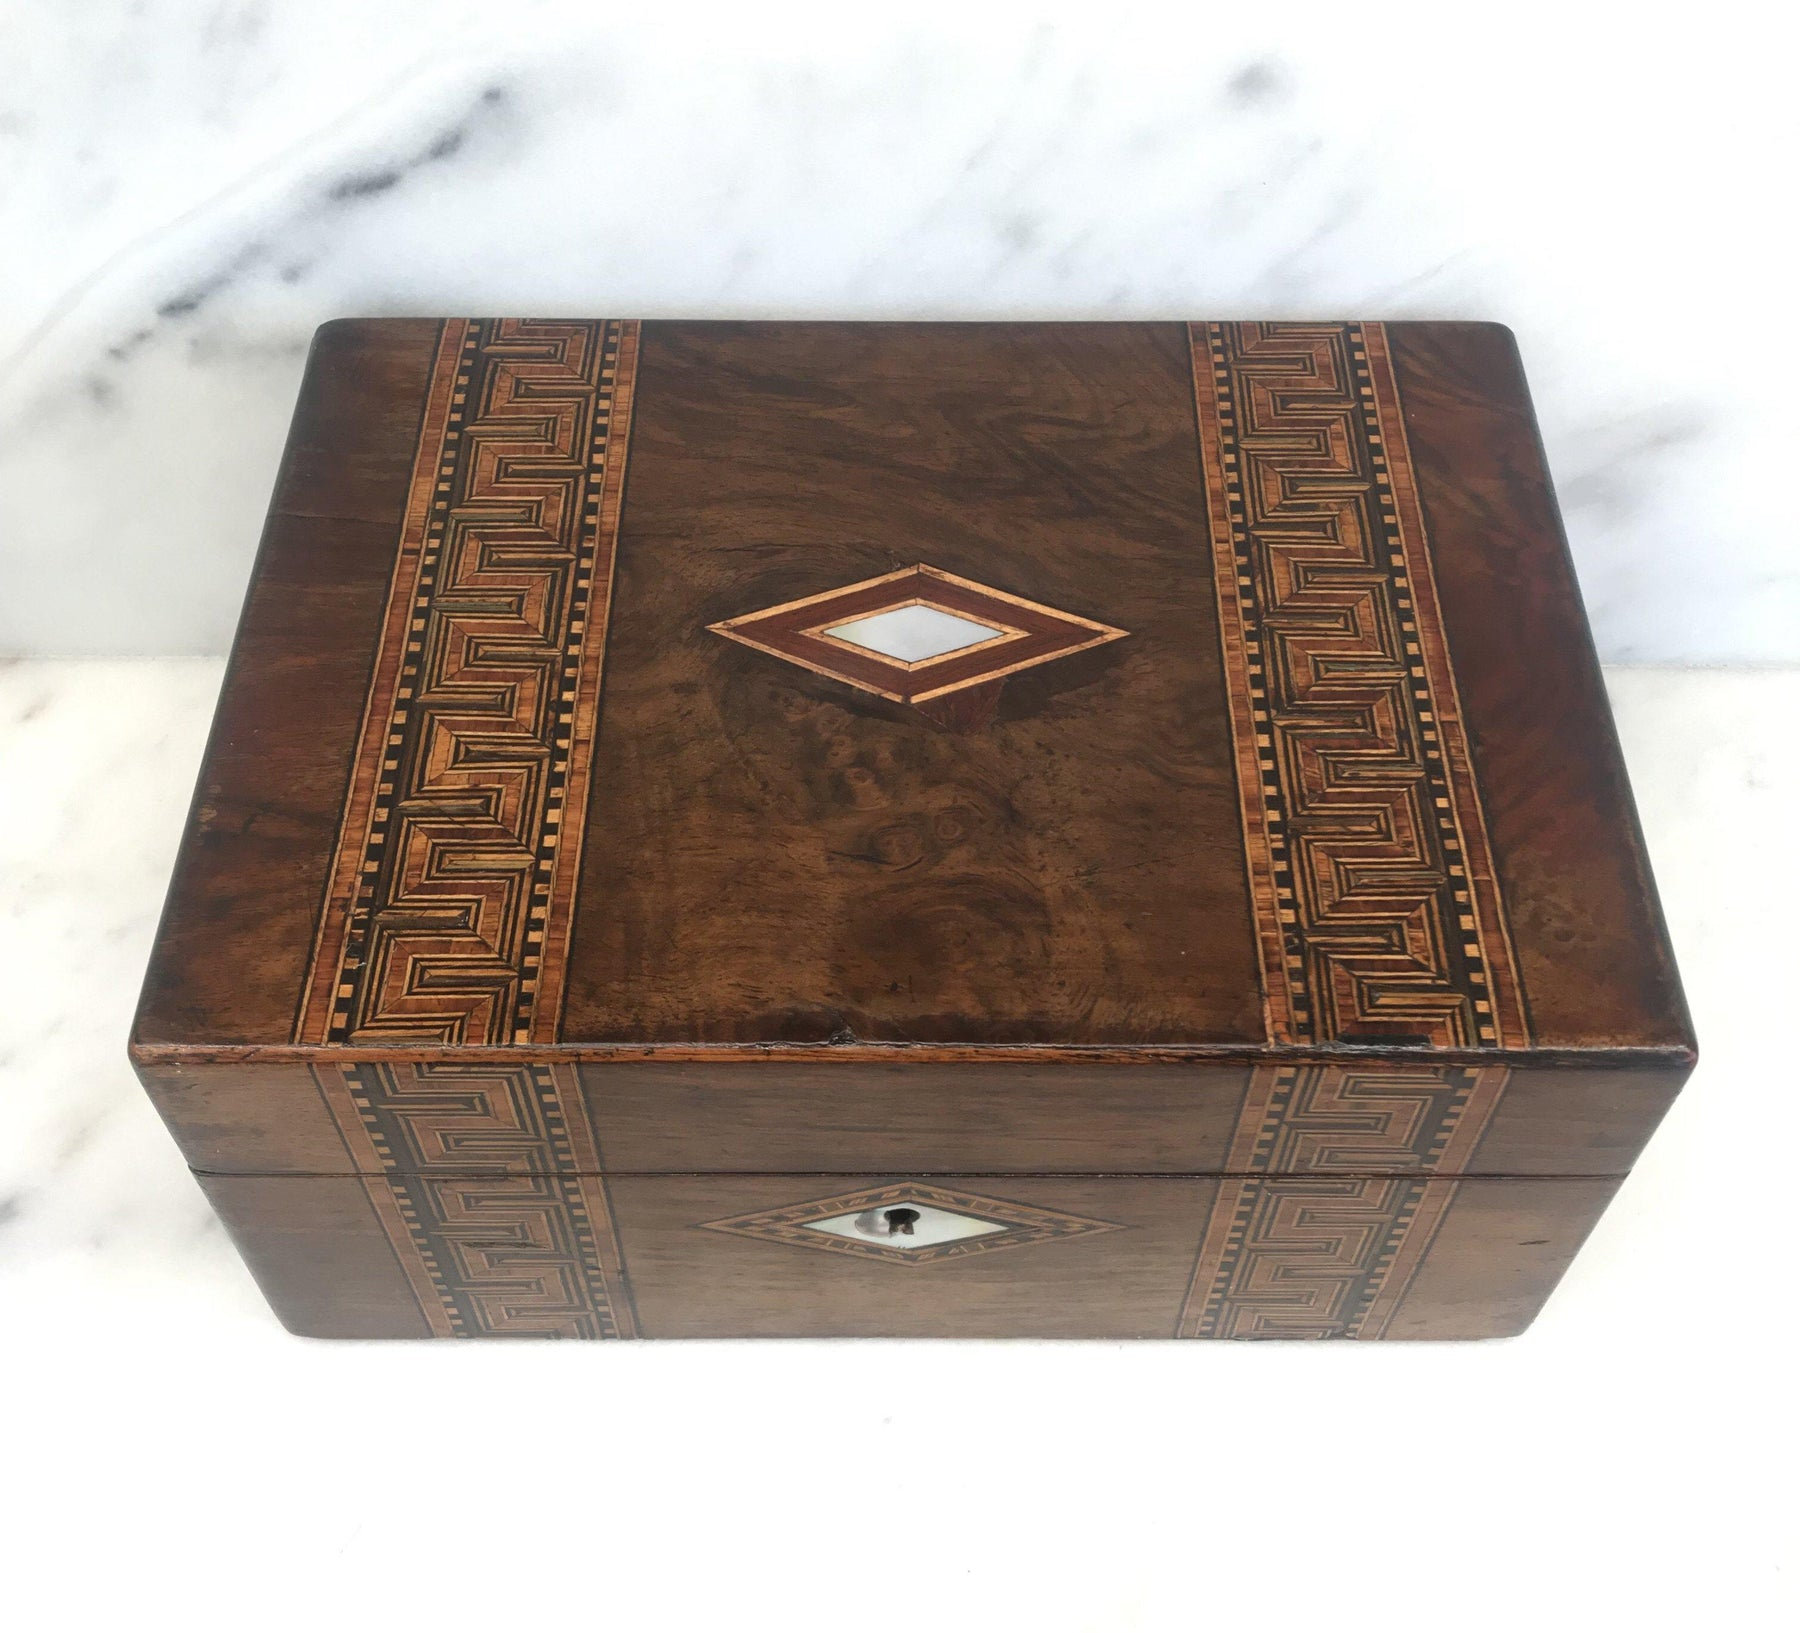 For Sale: British Inlaid Wood Box with Mother of Pearl Accents